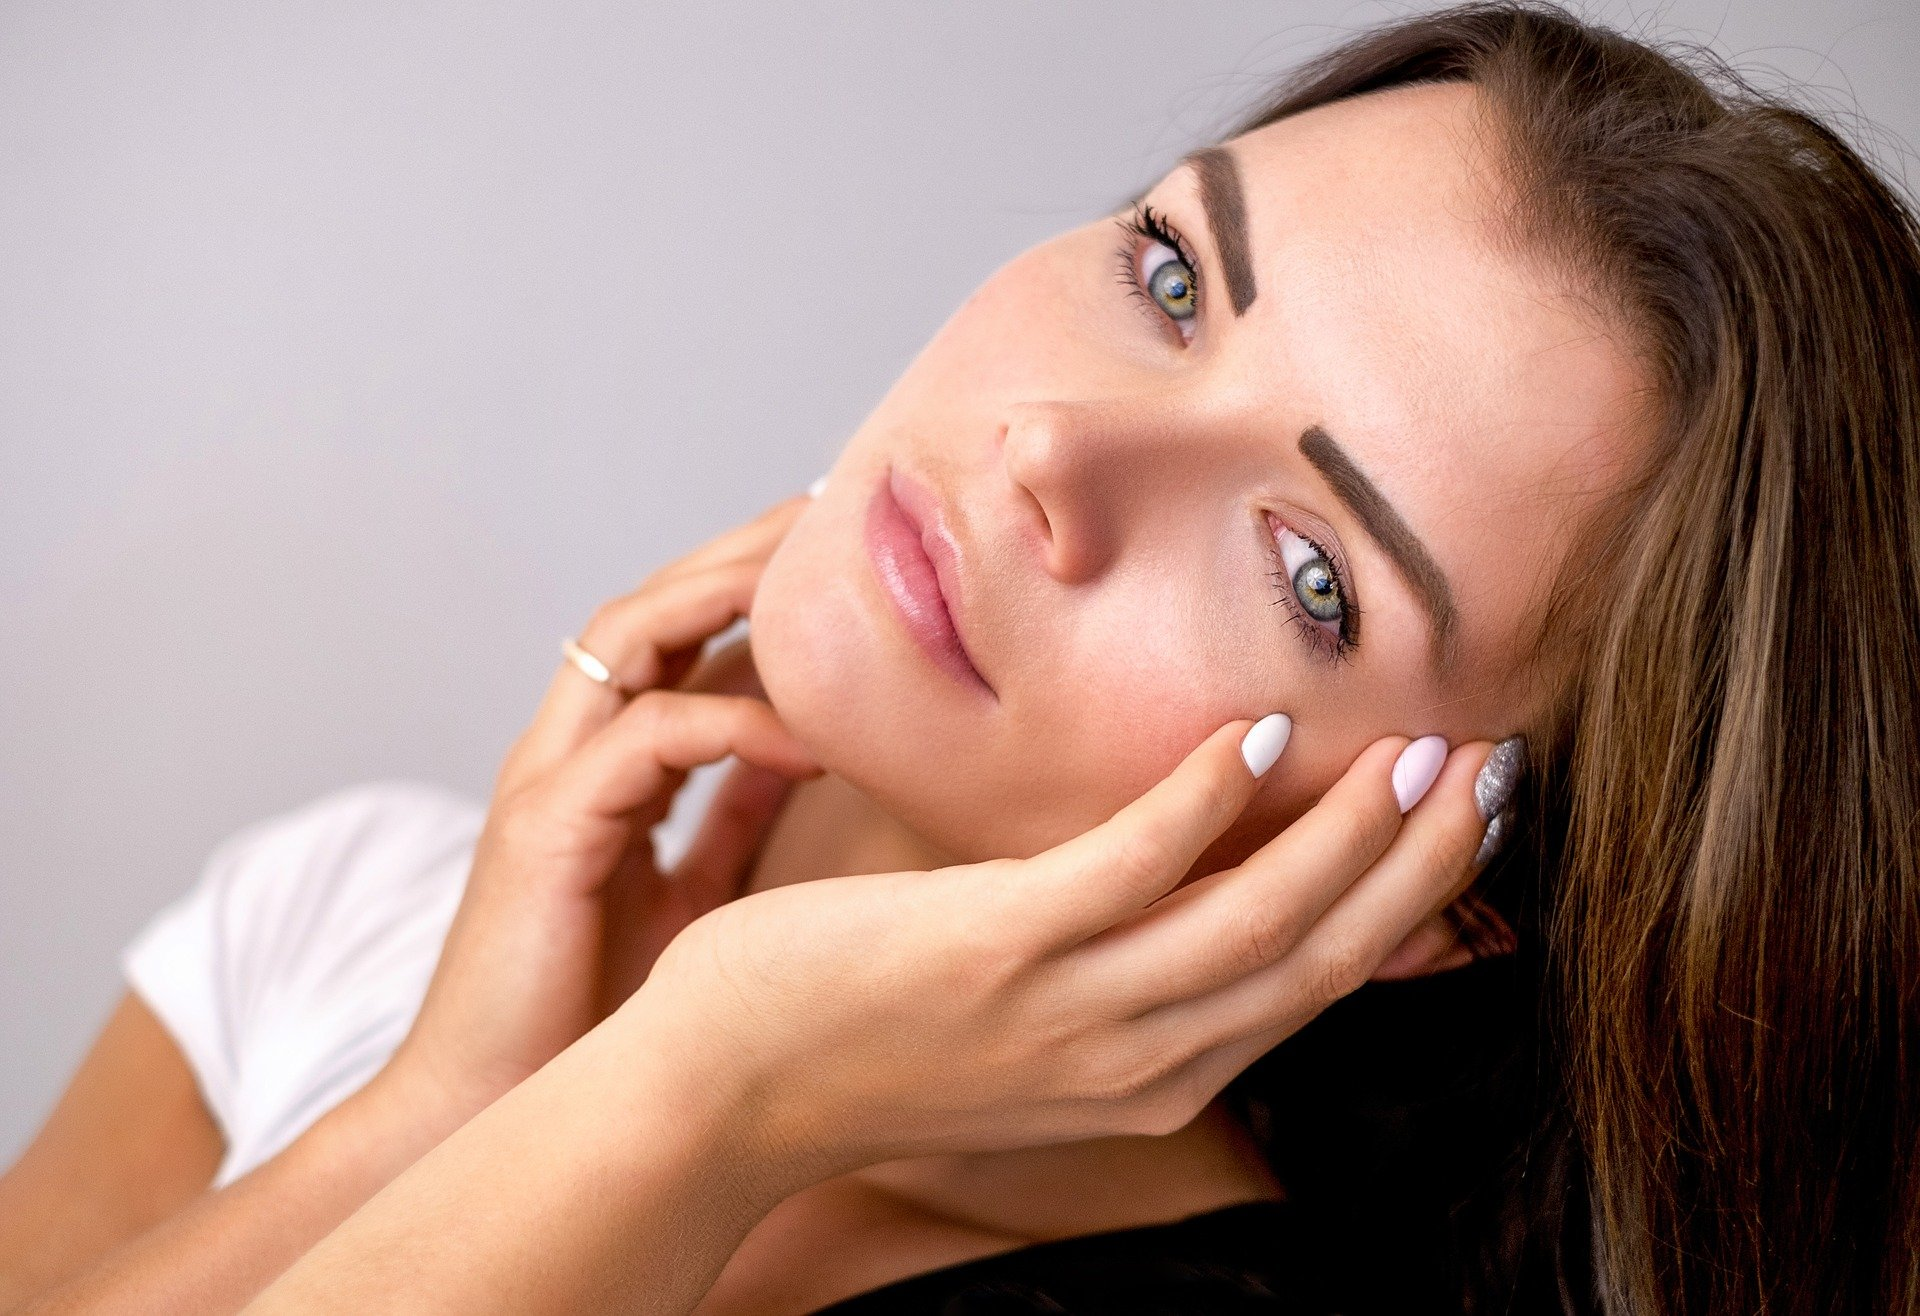 youthful woman touching her face after microneedling